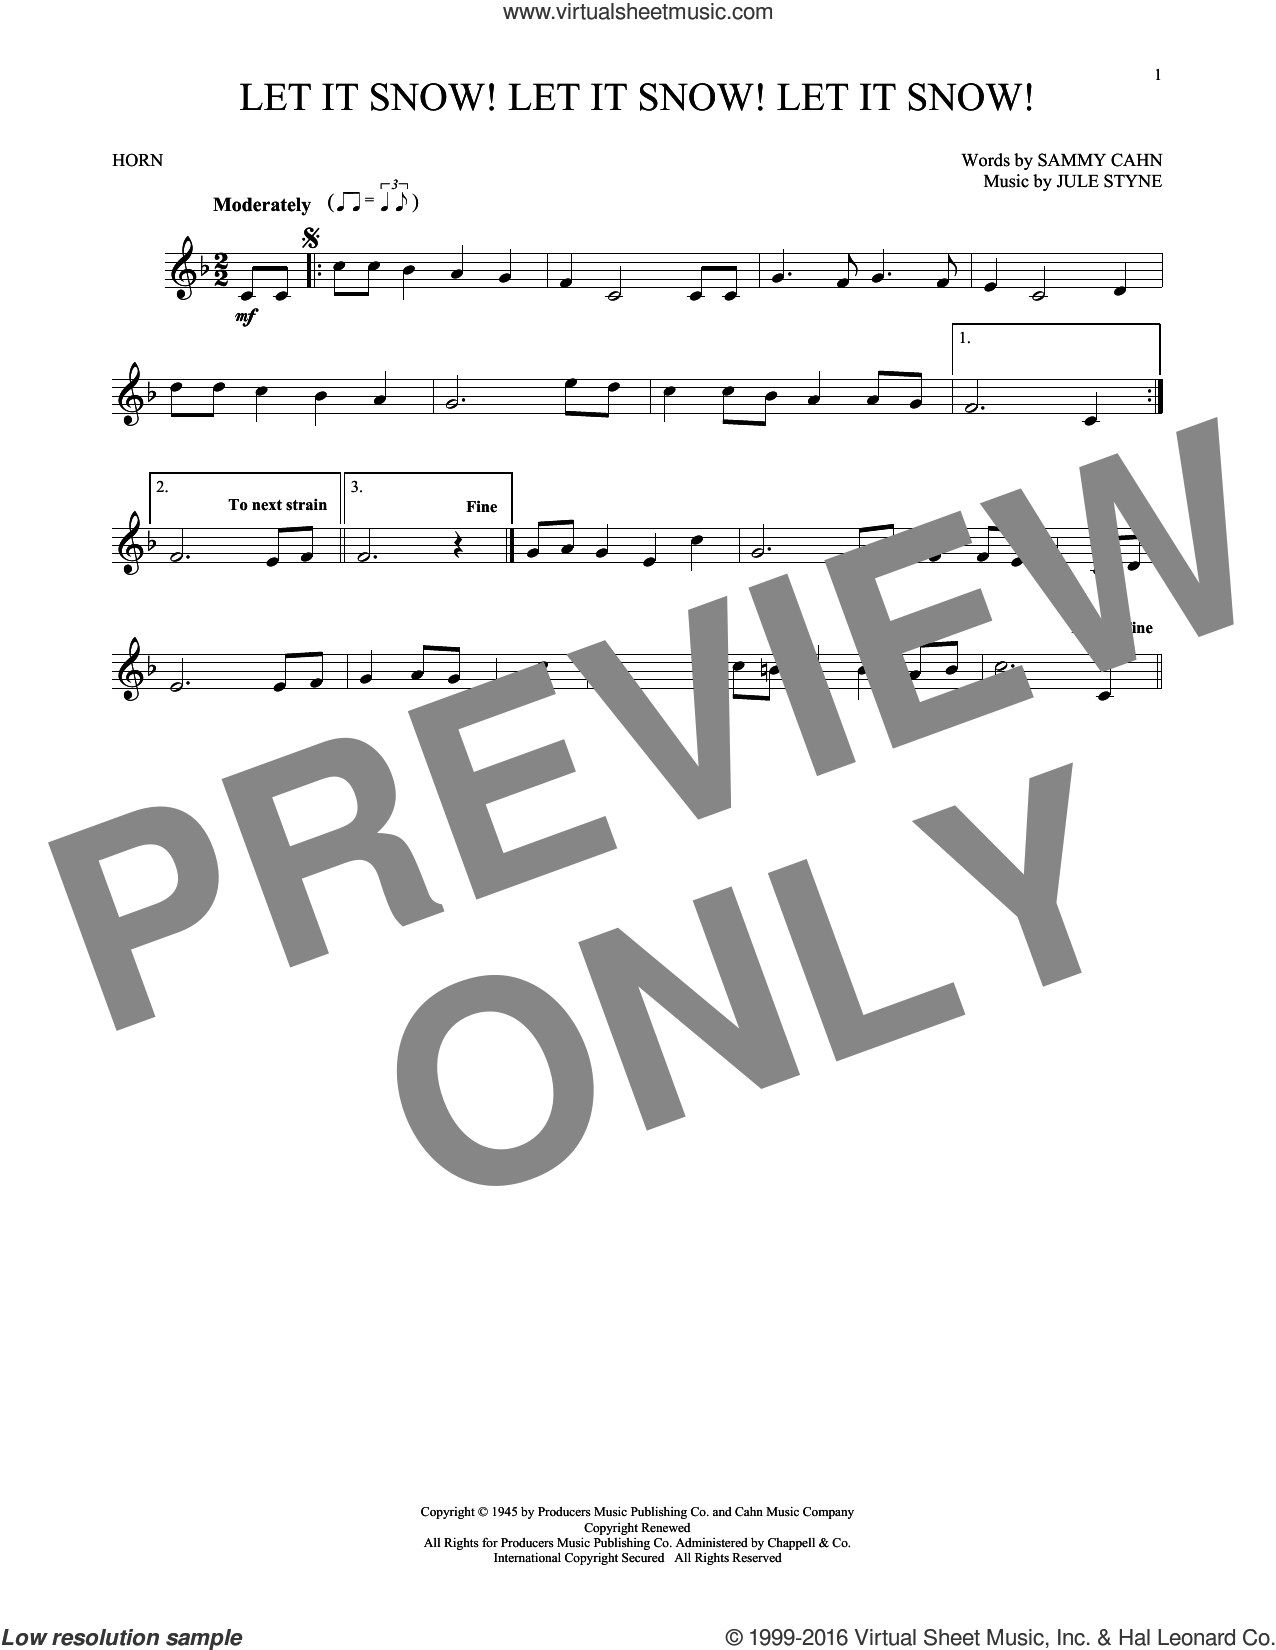 Let It Snow! Let It Snow! Let It Snow! sheet music for horn solo by Sammy Cahn, Jule Styne and Sammy Cahn & Julie Styne, intermediate skill level